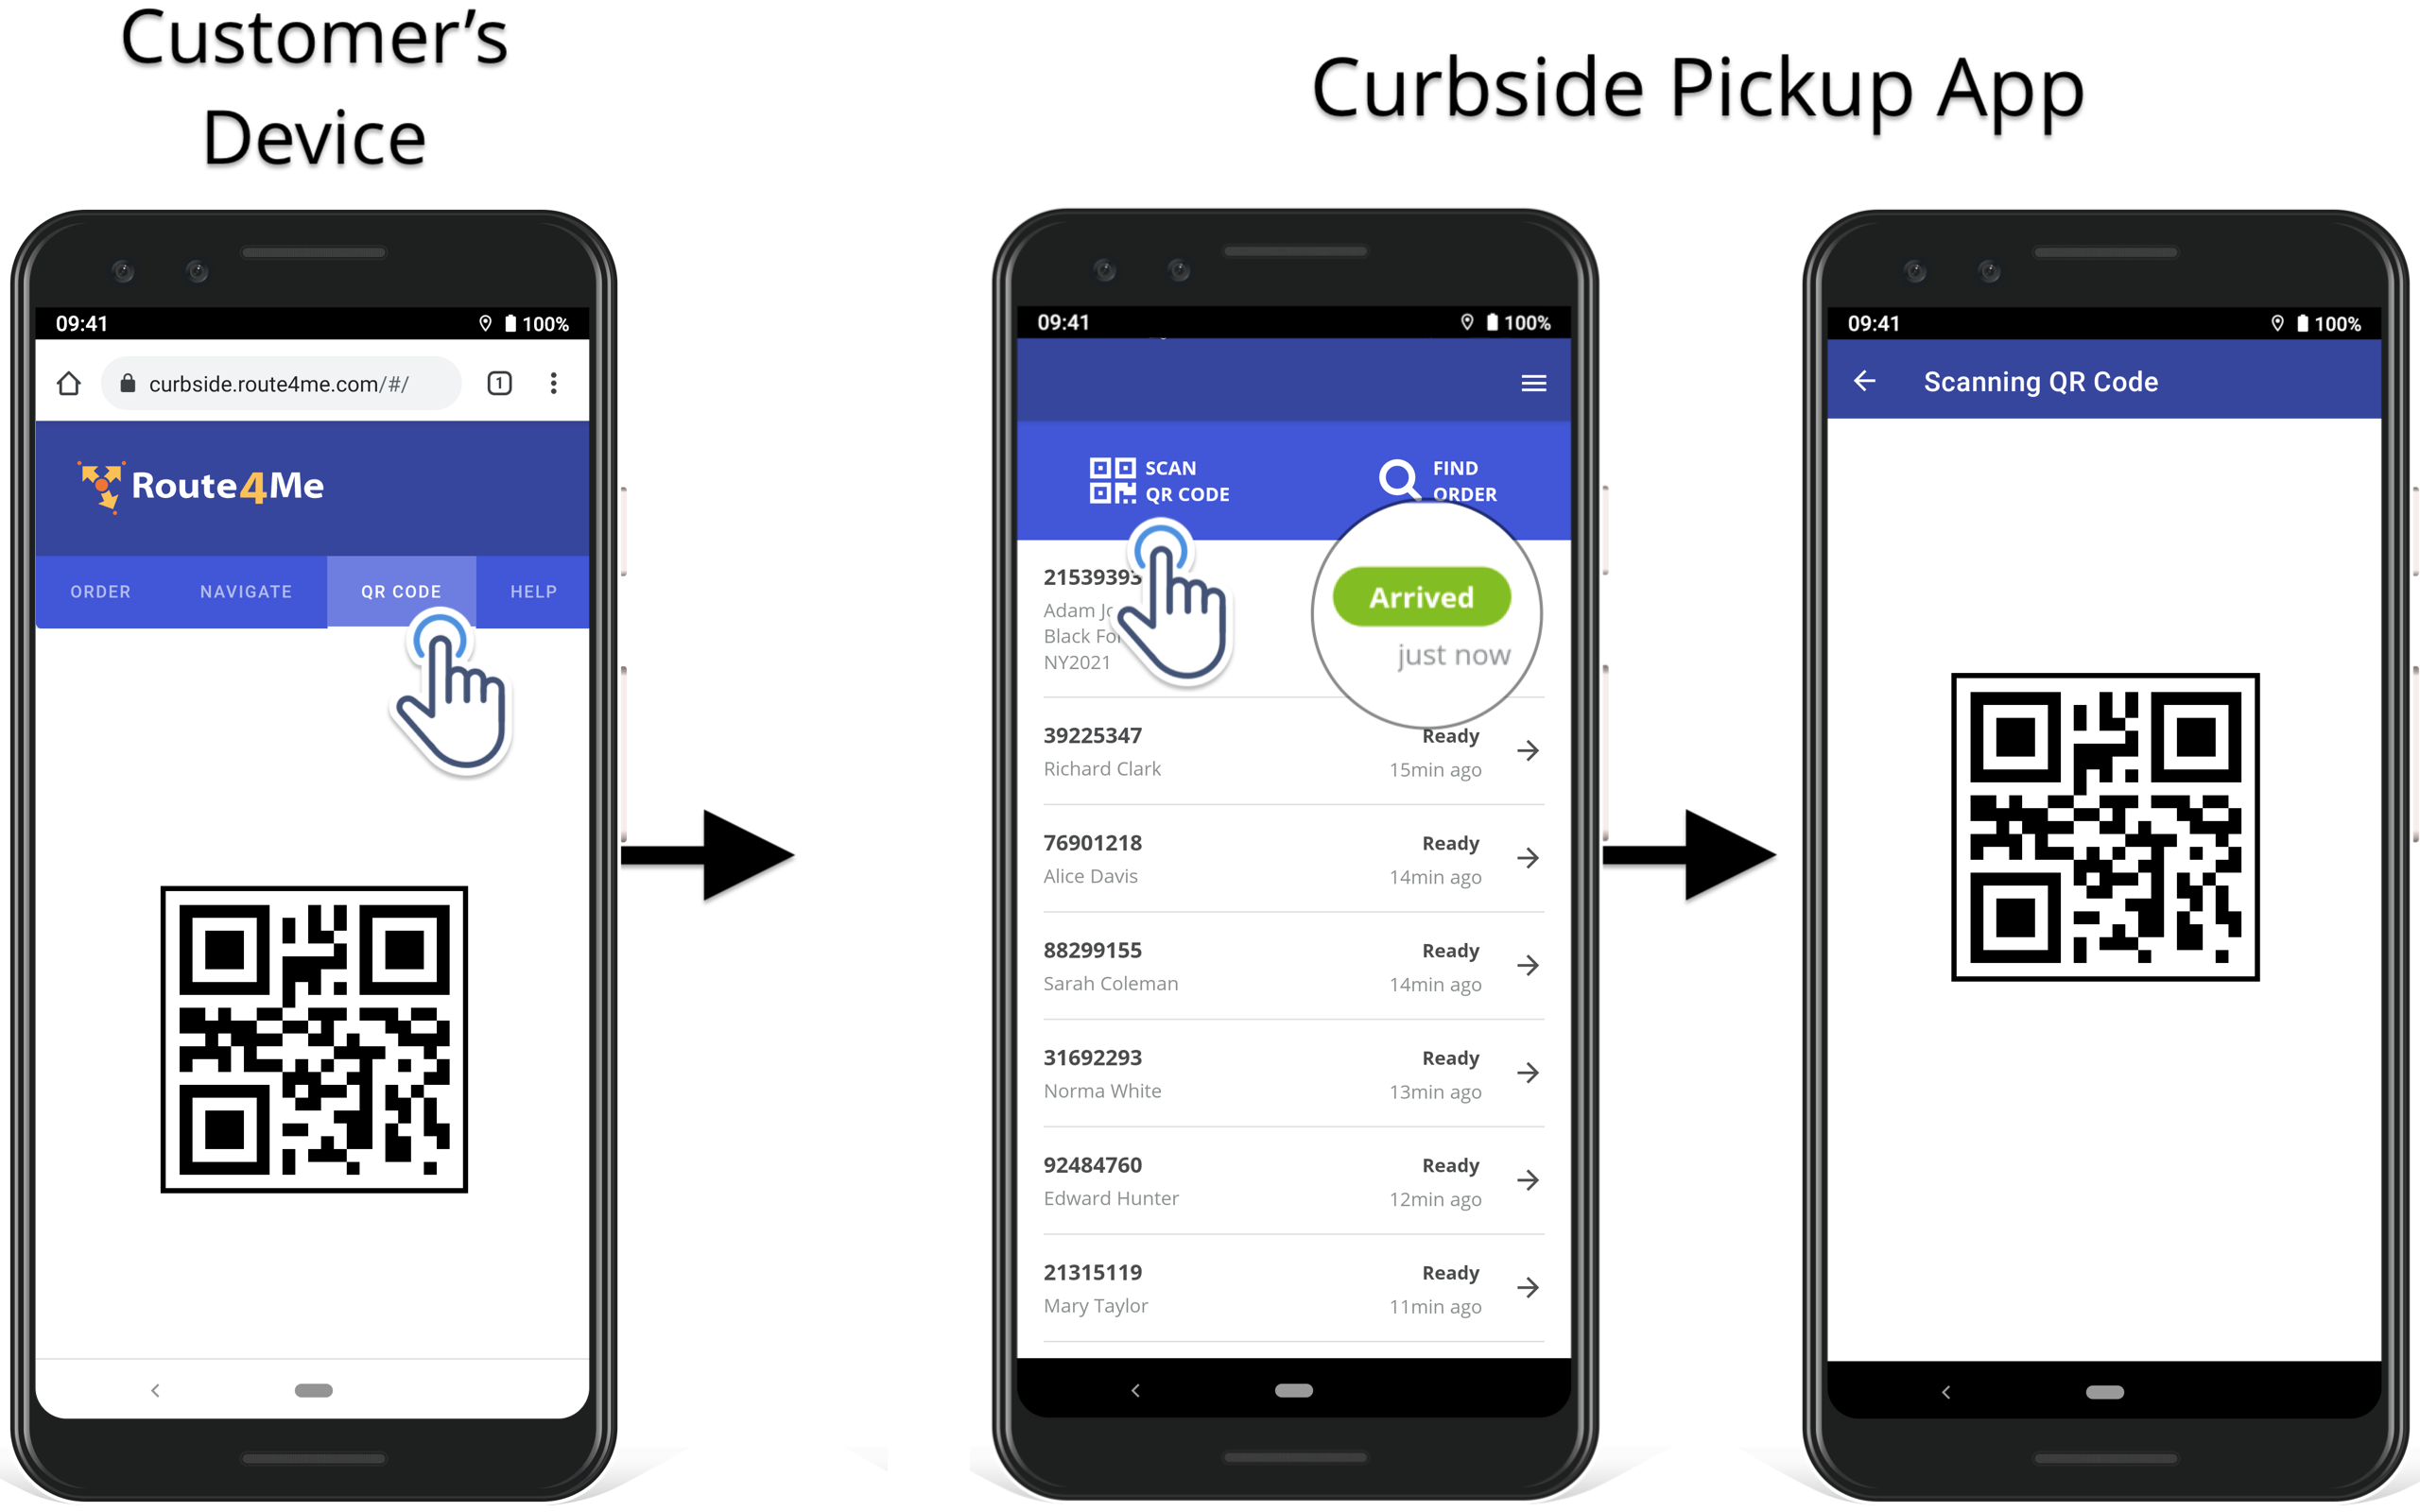 Curbside pickup app order confirmation to save time on order matching and give the right order to the right customer.